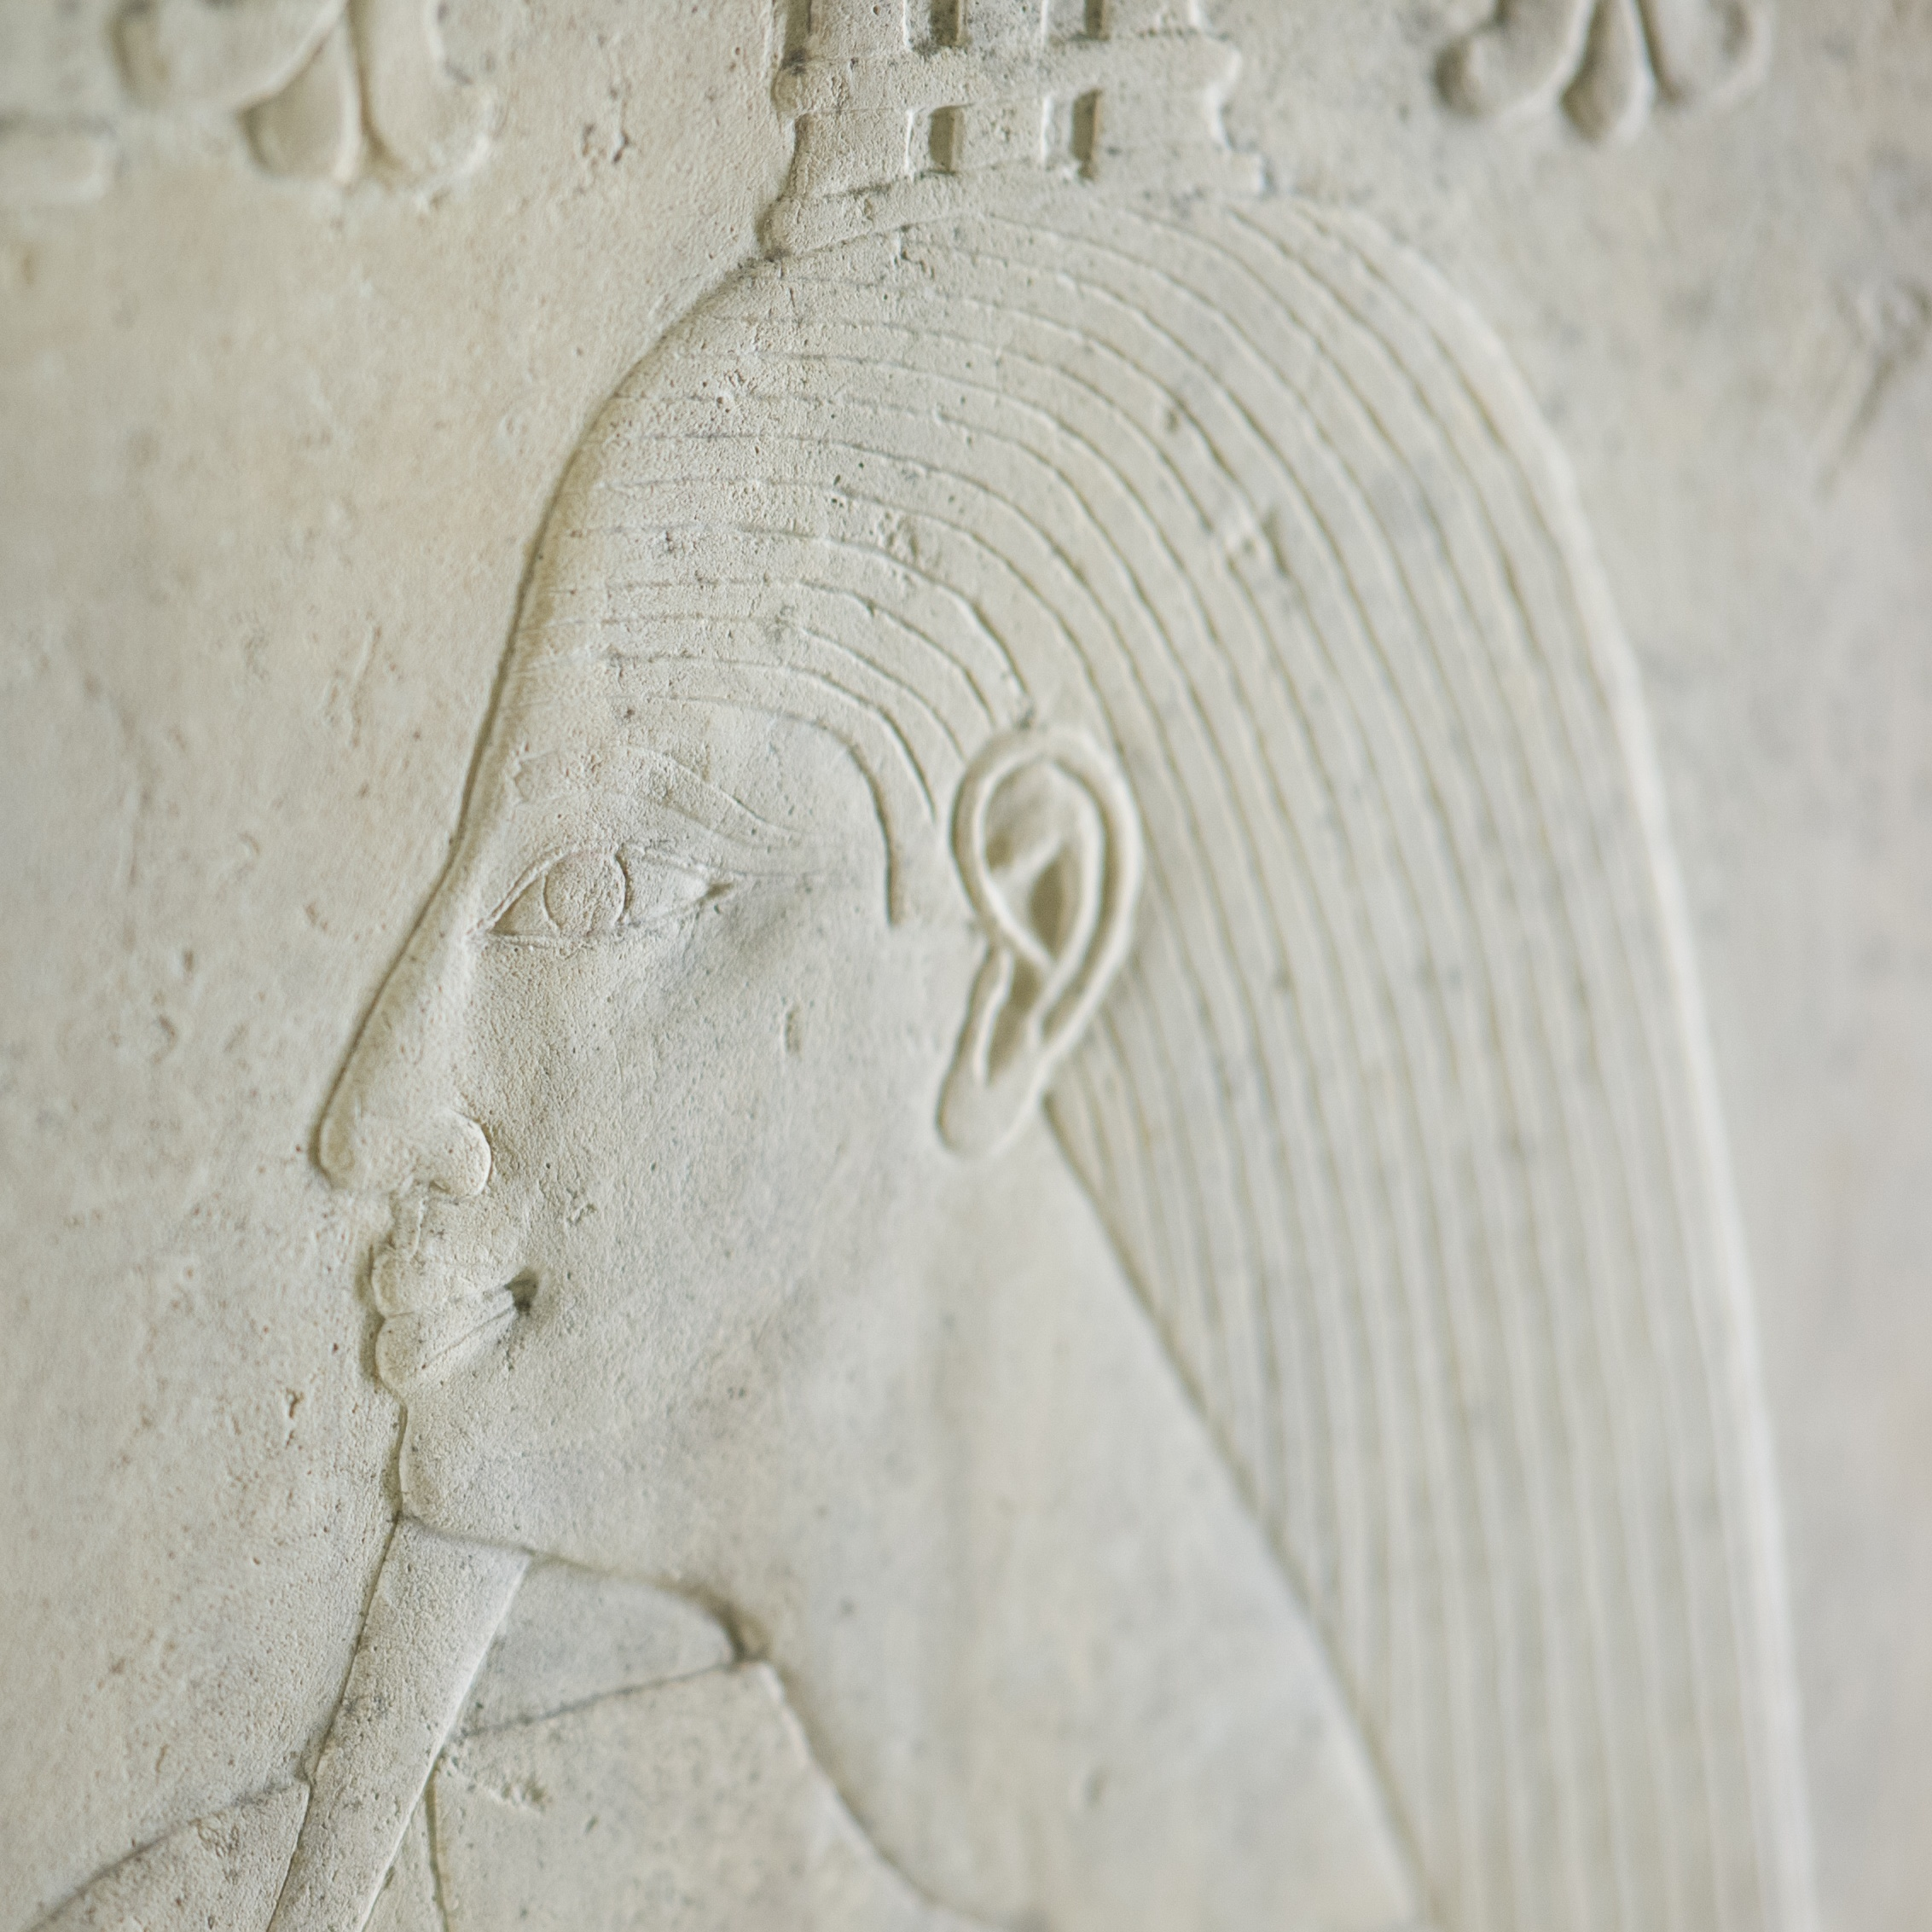 Colour photo of an ancient Egyptian stone carving showing a person in profile